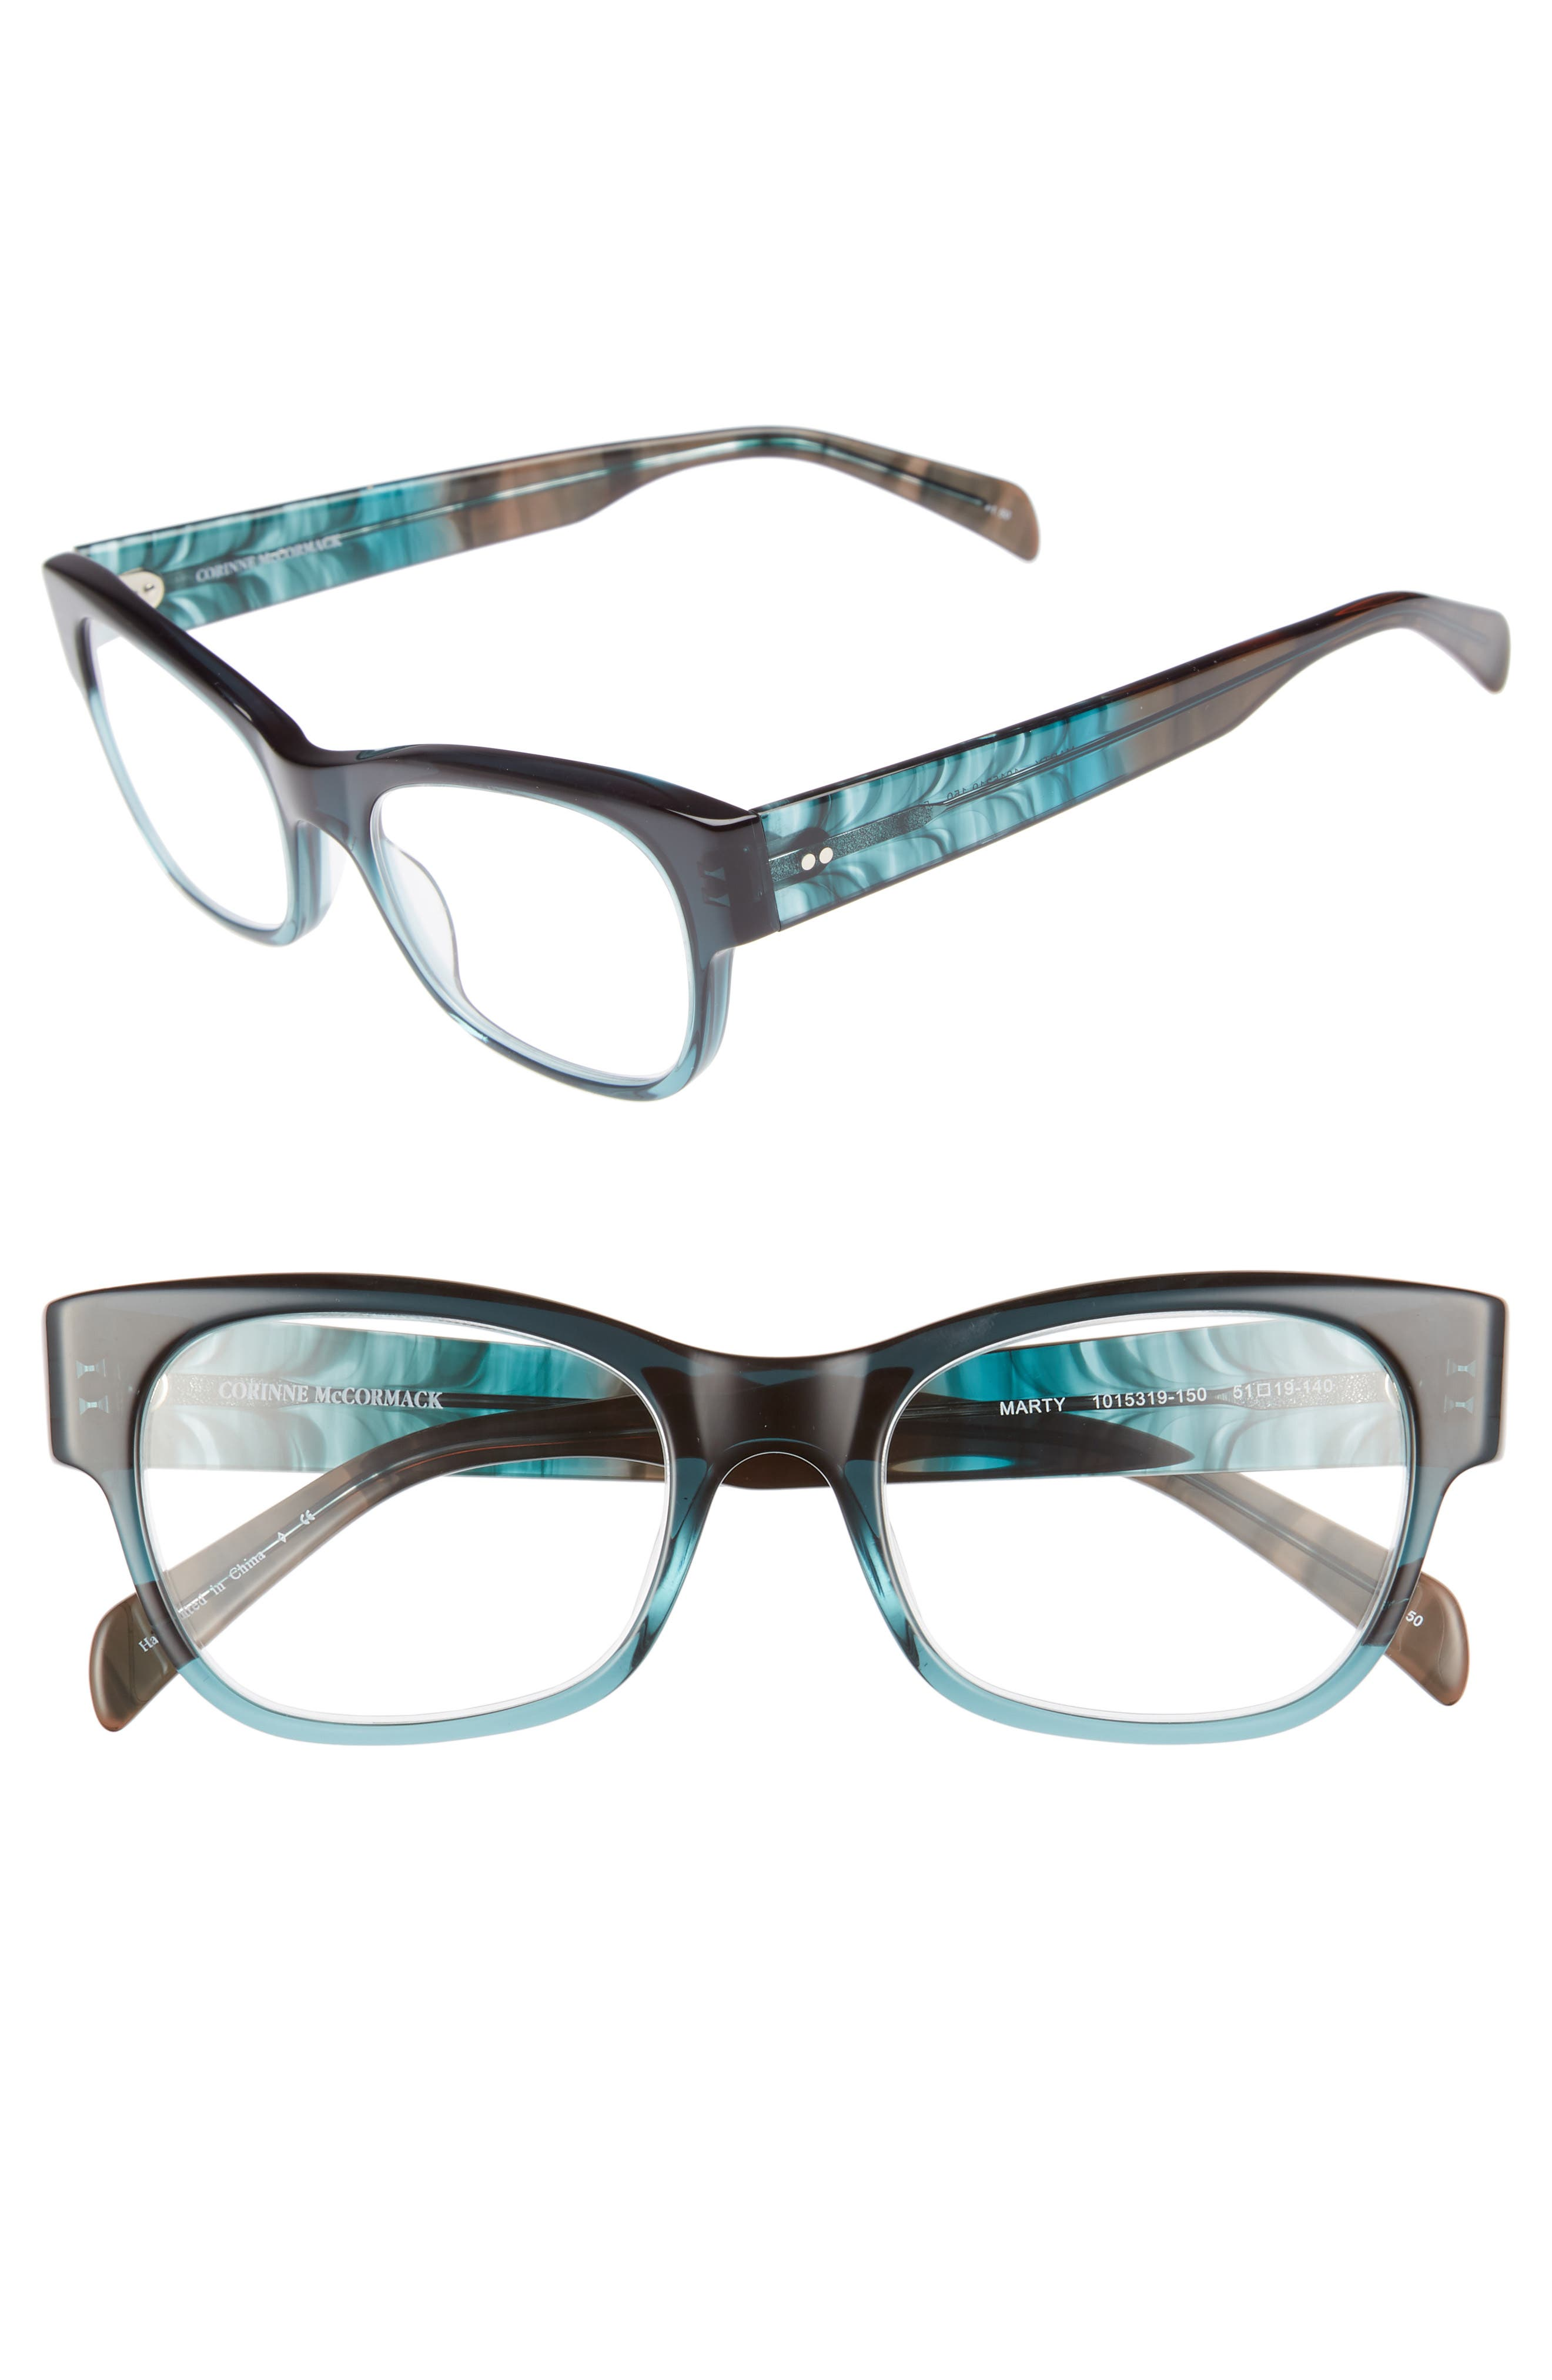 Marty 51mm Reading Glasses,                             Main thumbnail 1, color,                             Teal